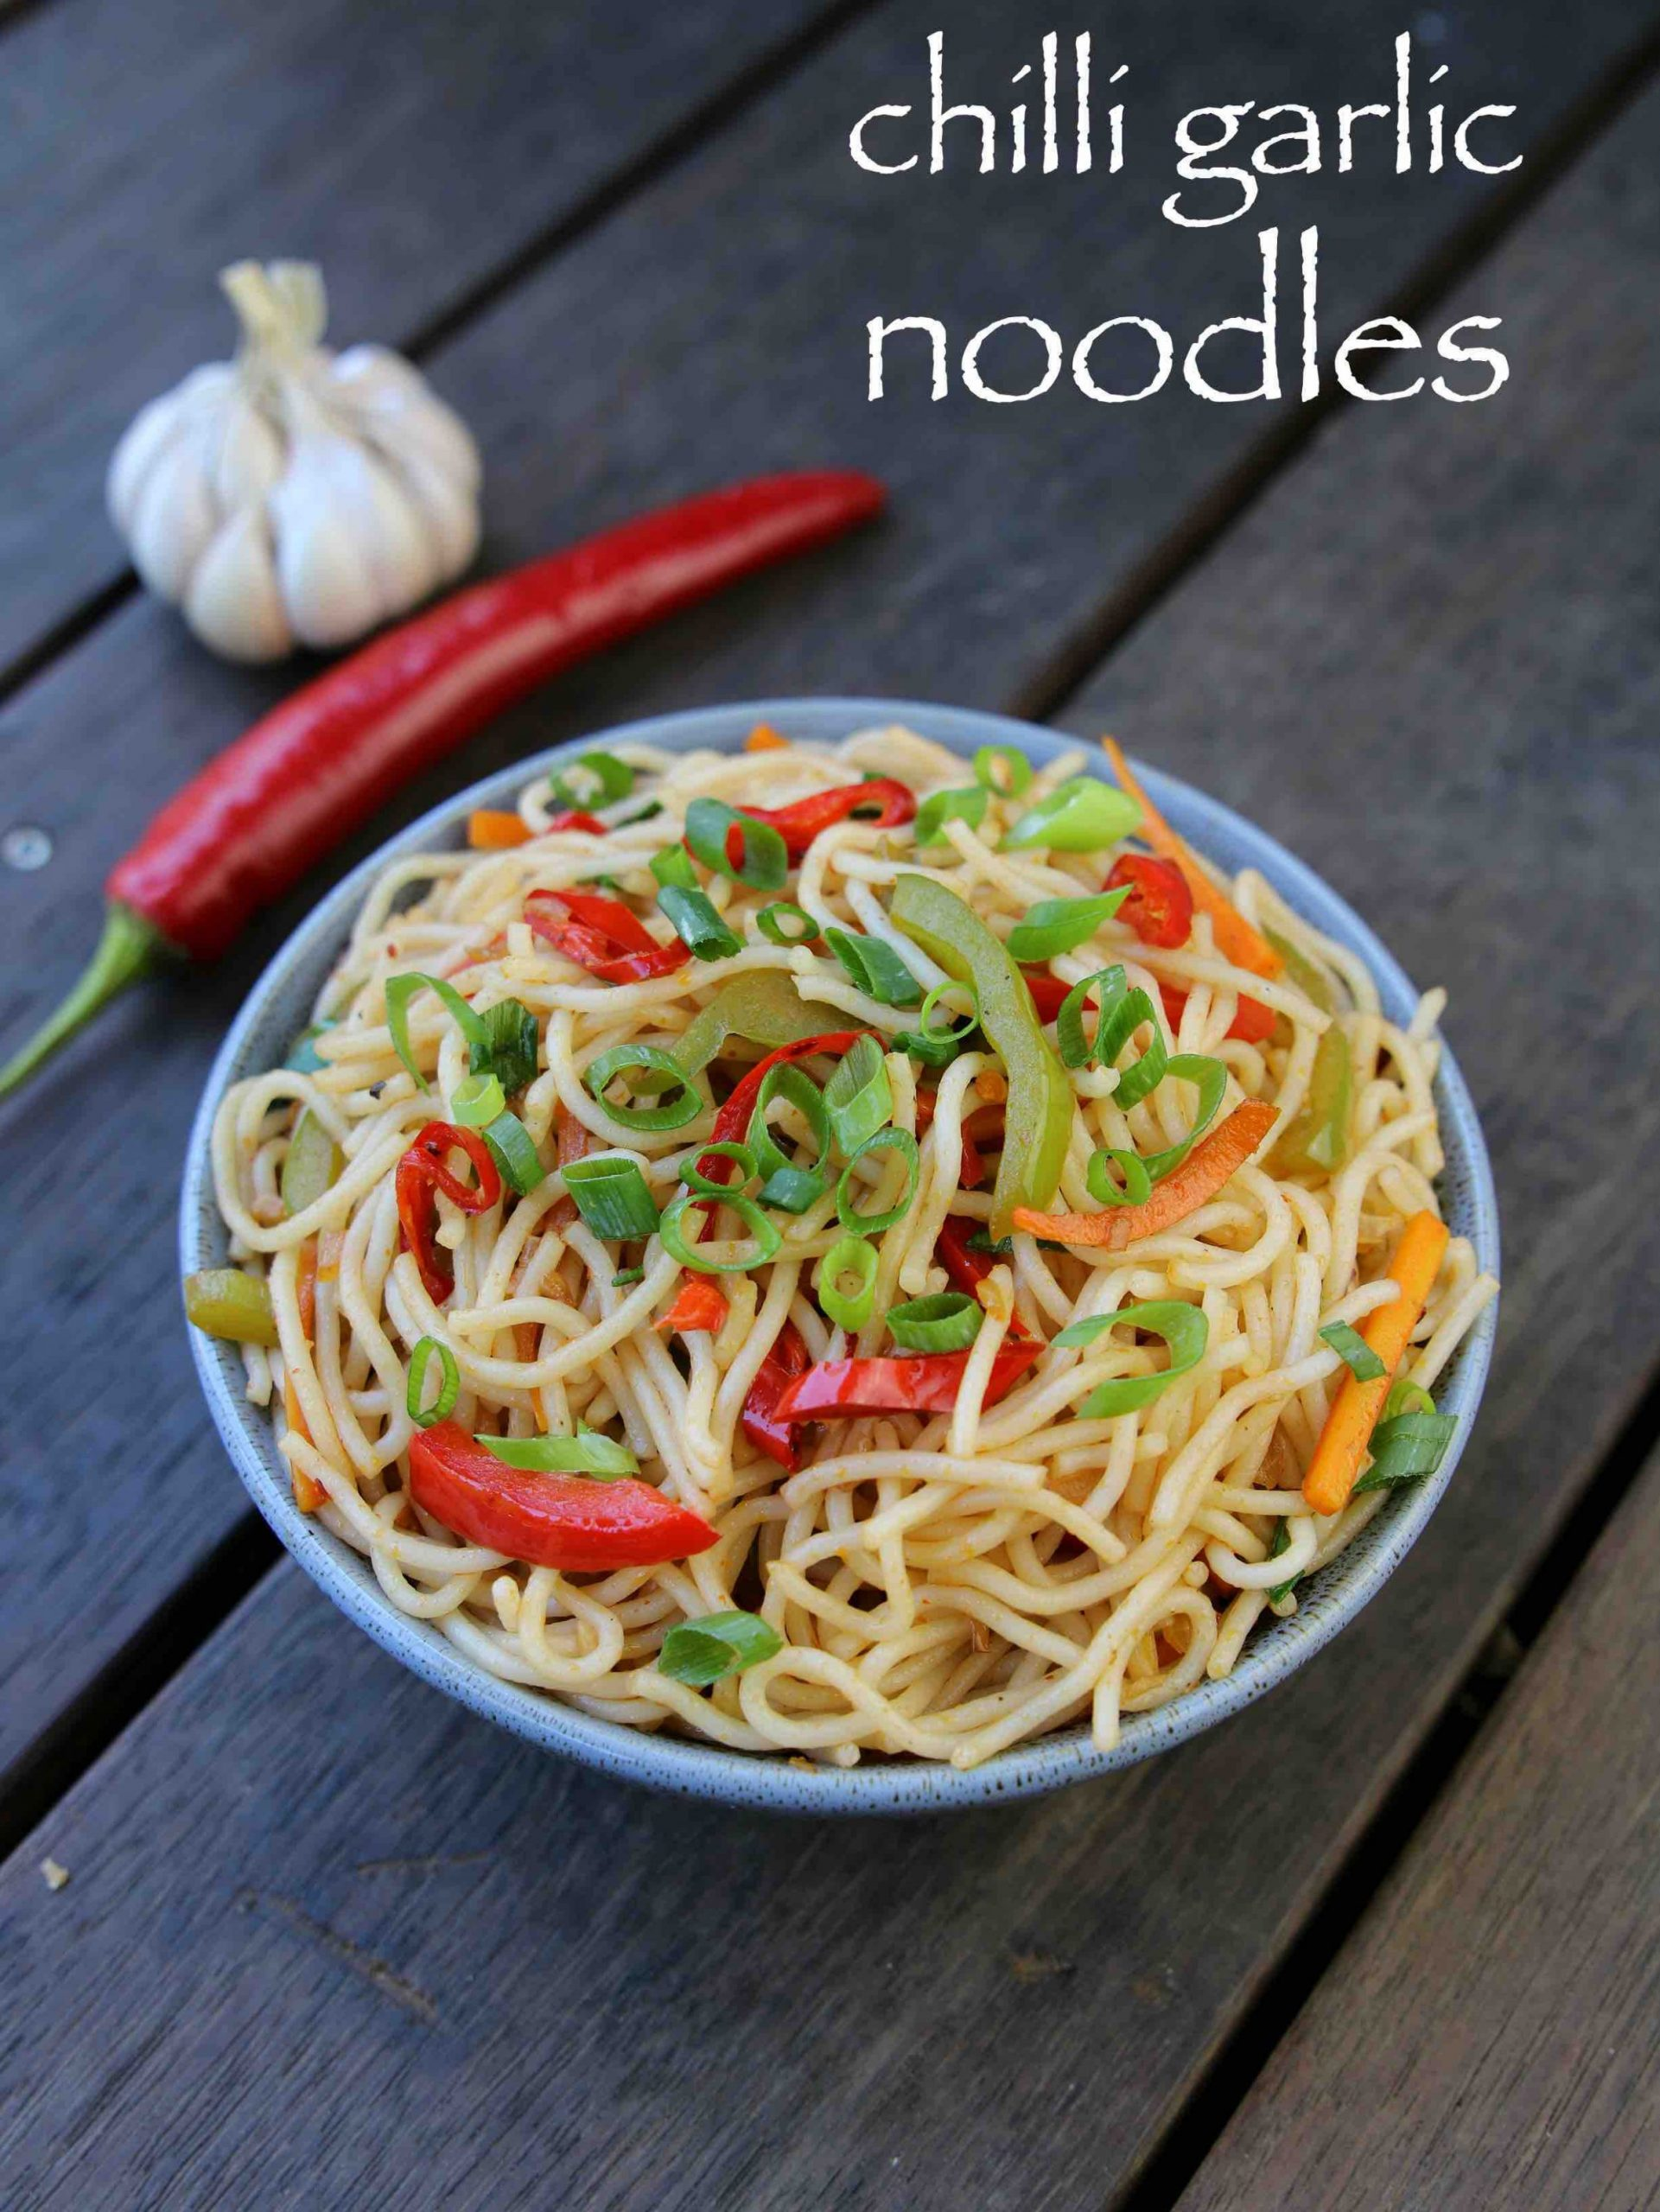 chilli garlic noodles recipe | garlic noodles recipe | chinese noodles - Pasta Recipes Hebbars Kitchen